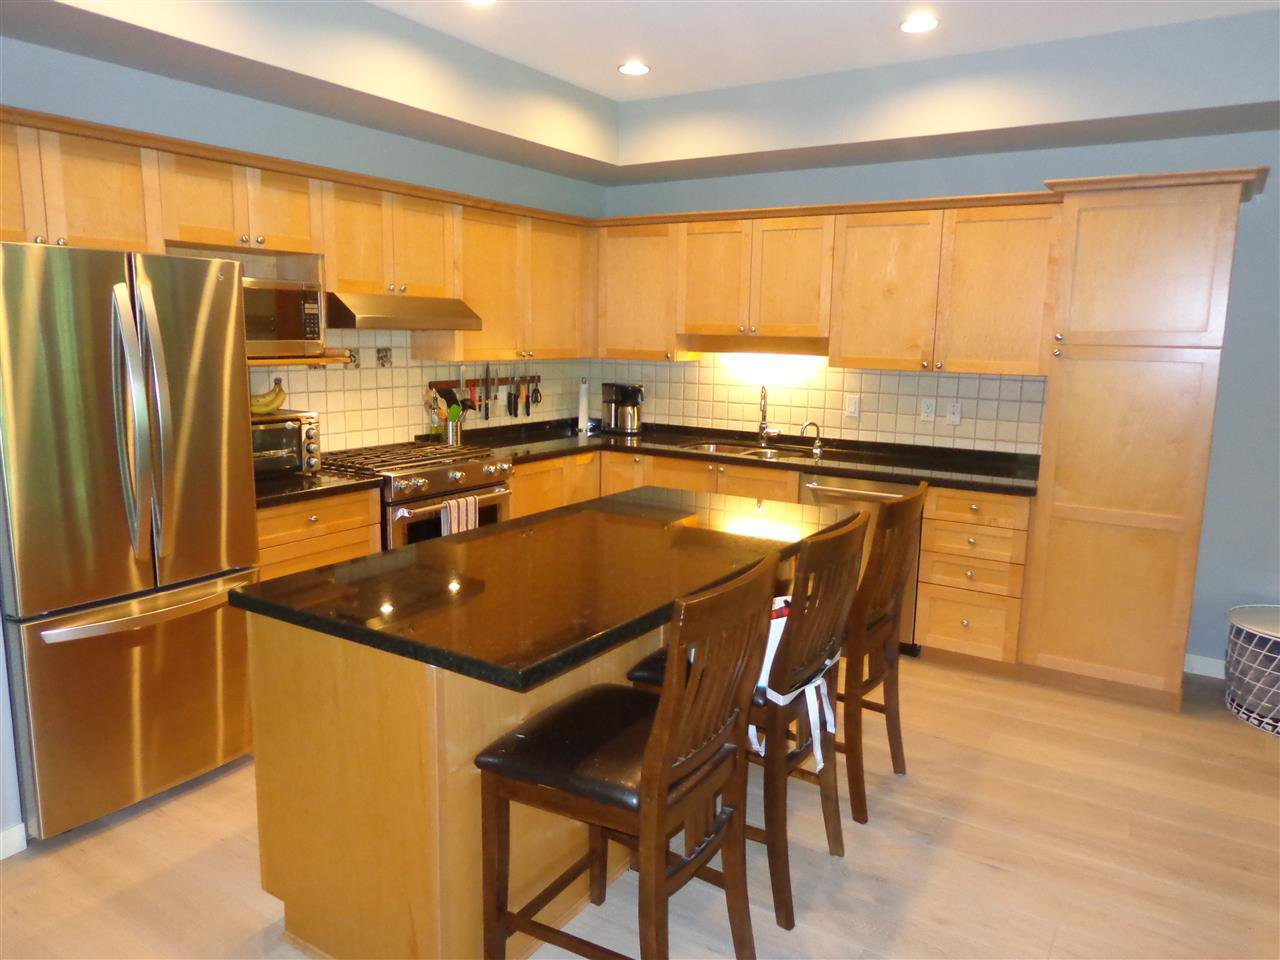 """Photo 6: Photos: 10 8588 168A Street in Surrey: Fleetwood Tynehead Townhouse for sale in """"The Brookstone"""" : MLS®# R2384013"""